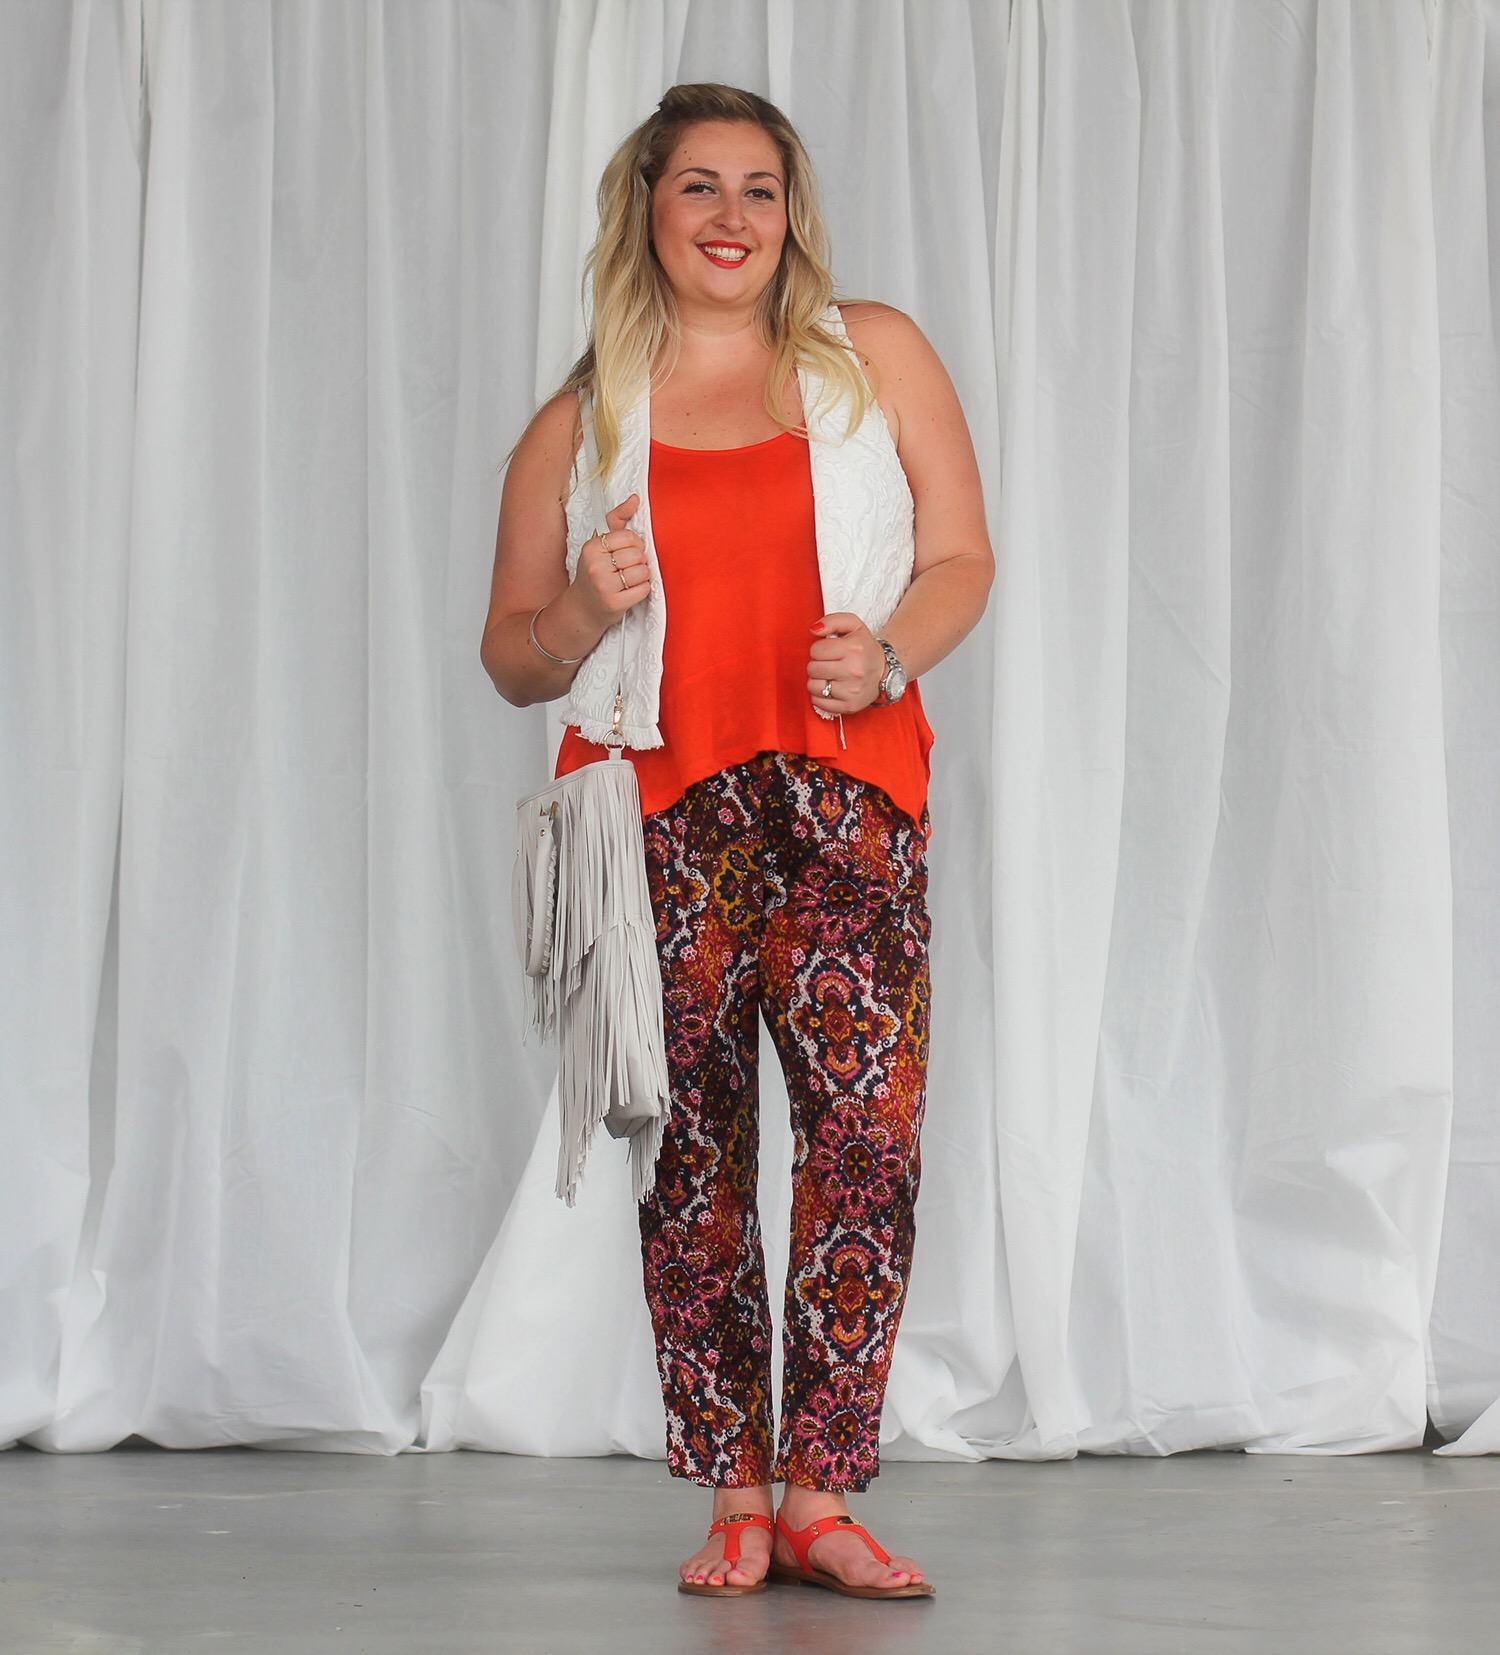 H&M Bayshore Plus Size Fashion Ottawa Fashion blog mode XLusive Chantsy Chantal Sarkisian